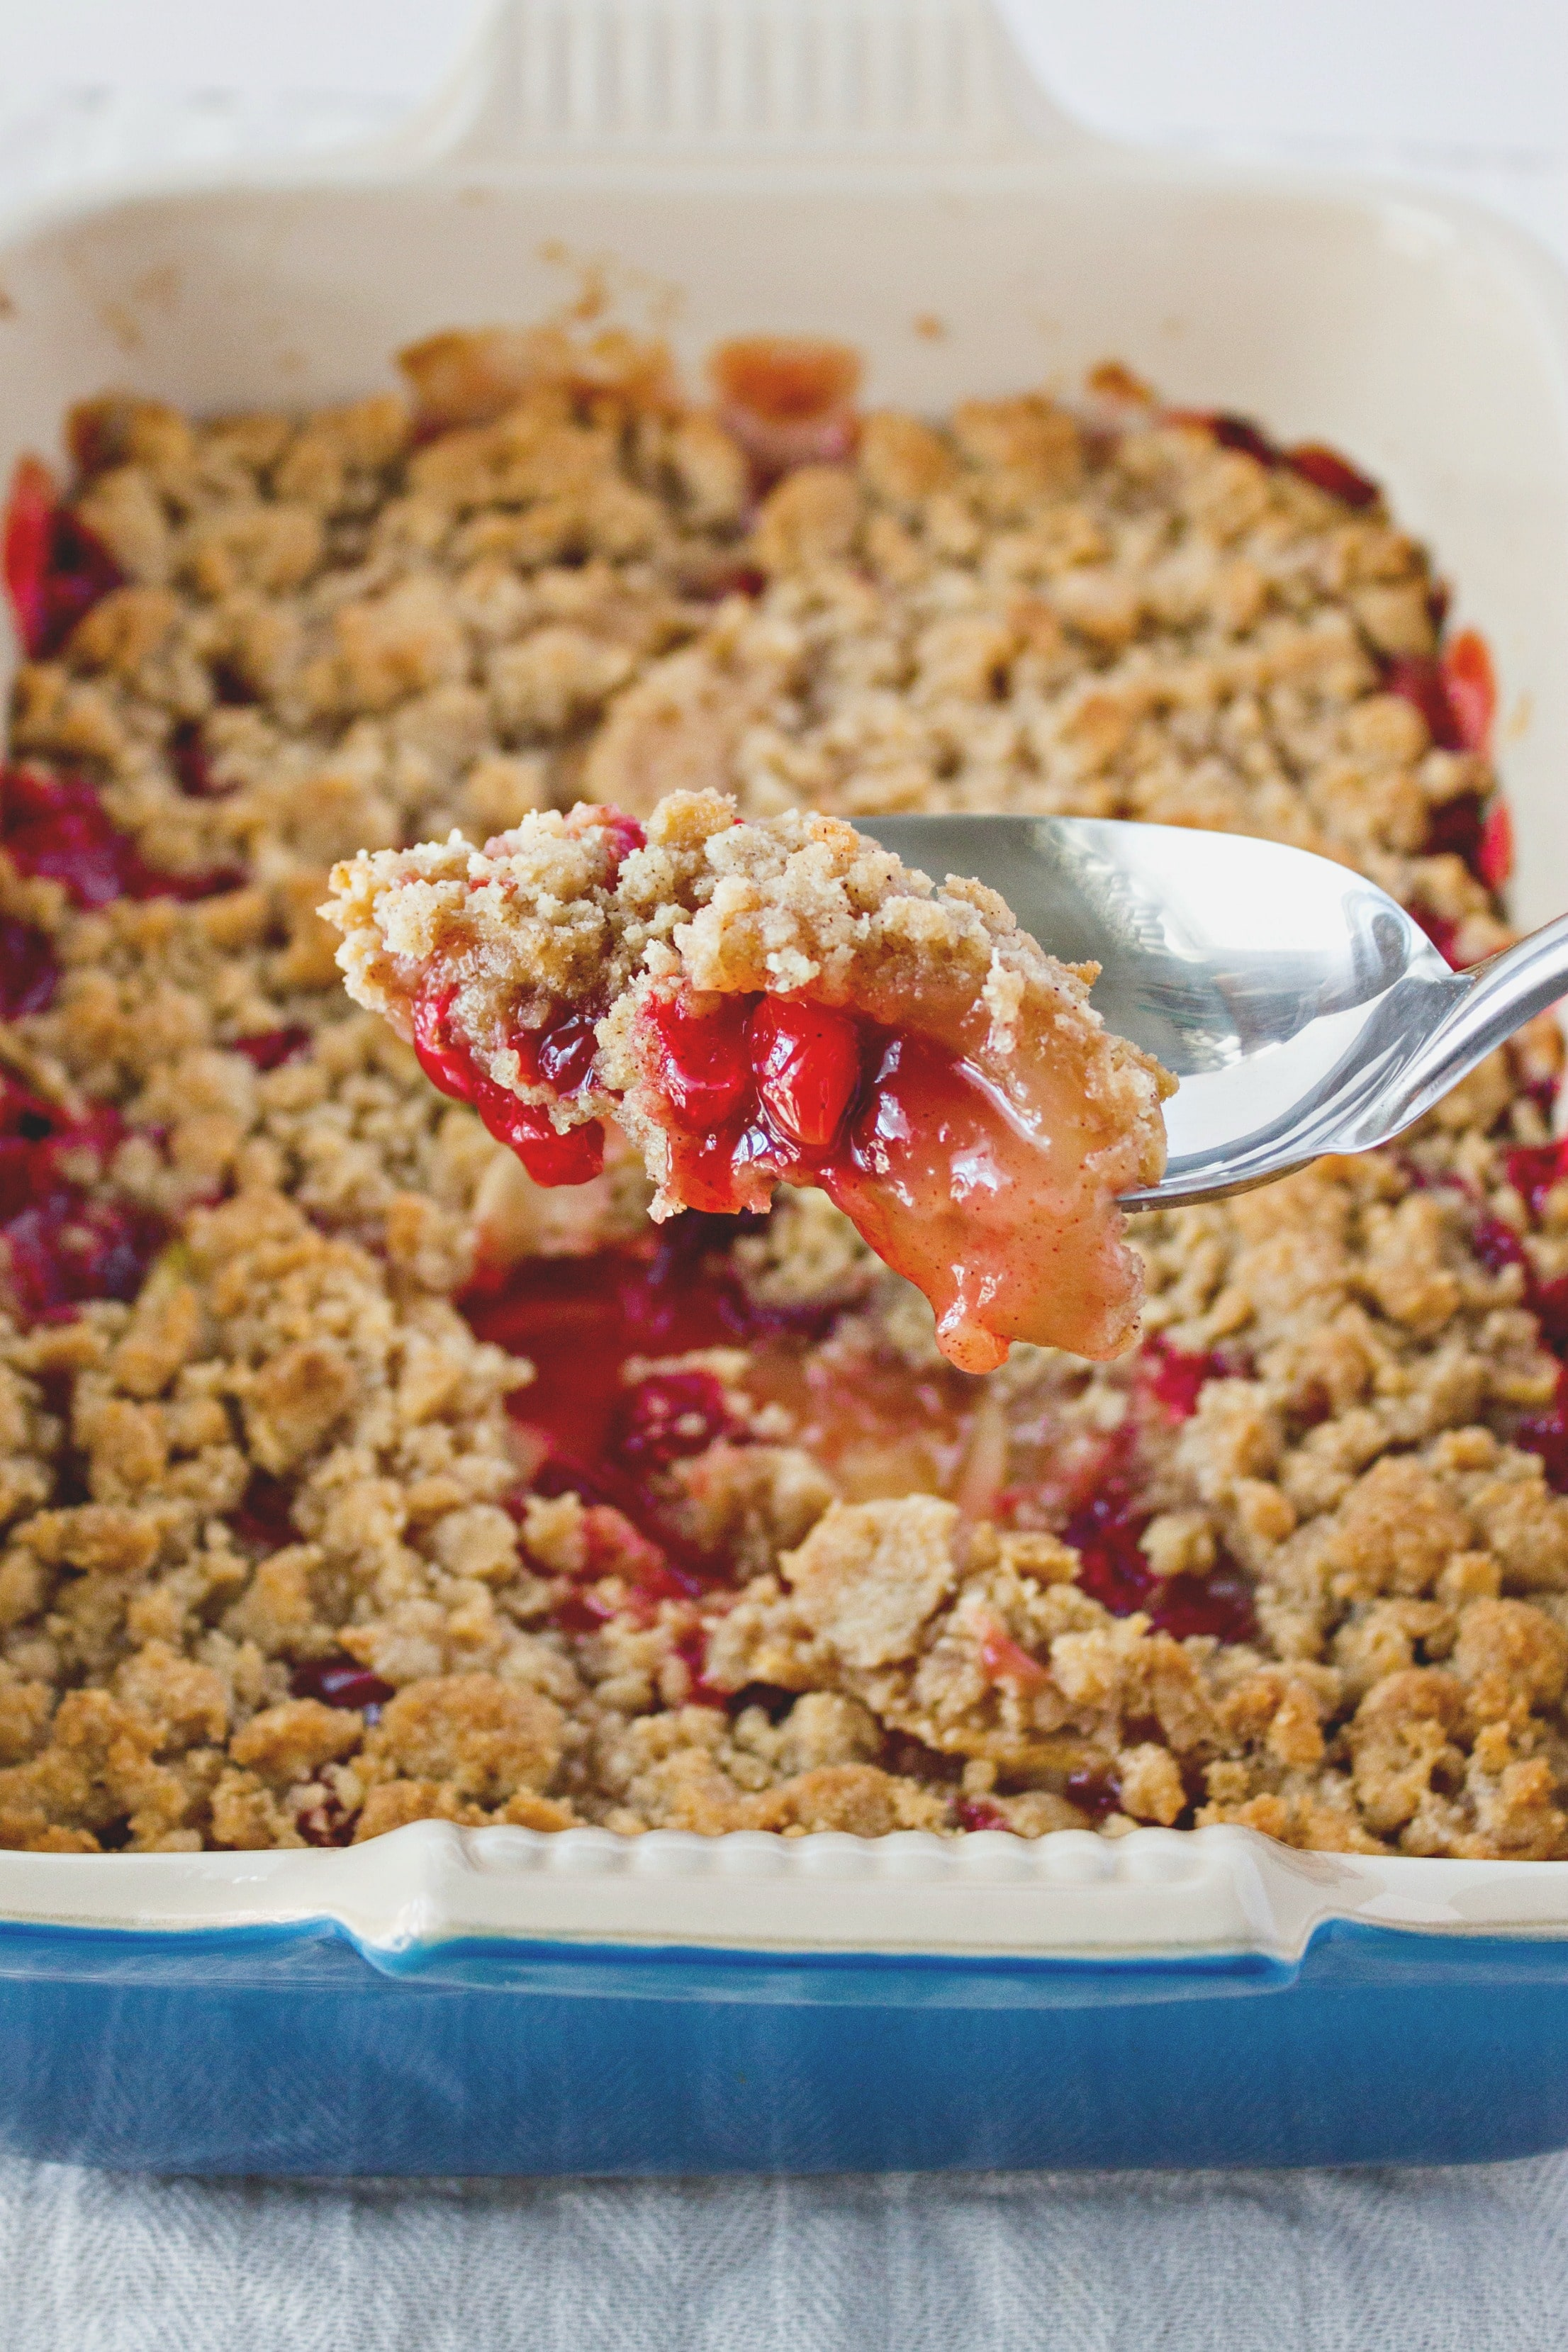 Pan of Cranberry Apple Crumble